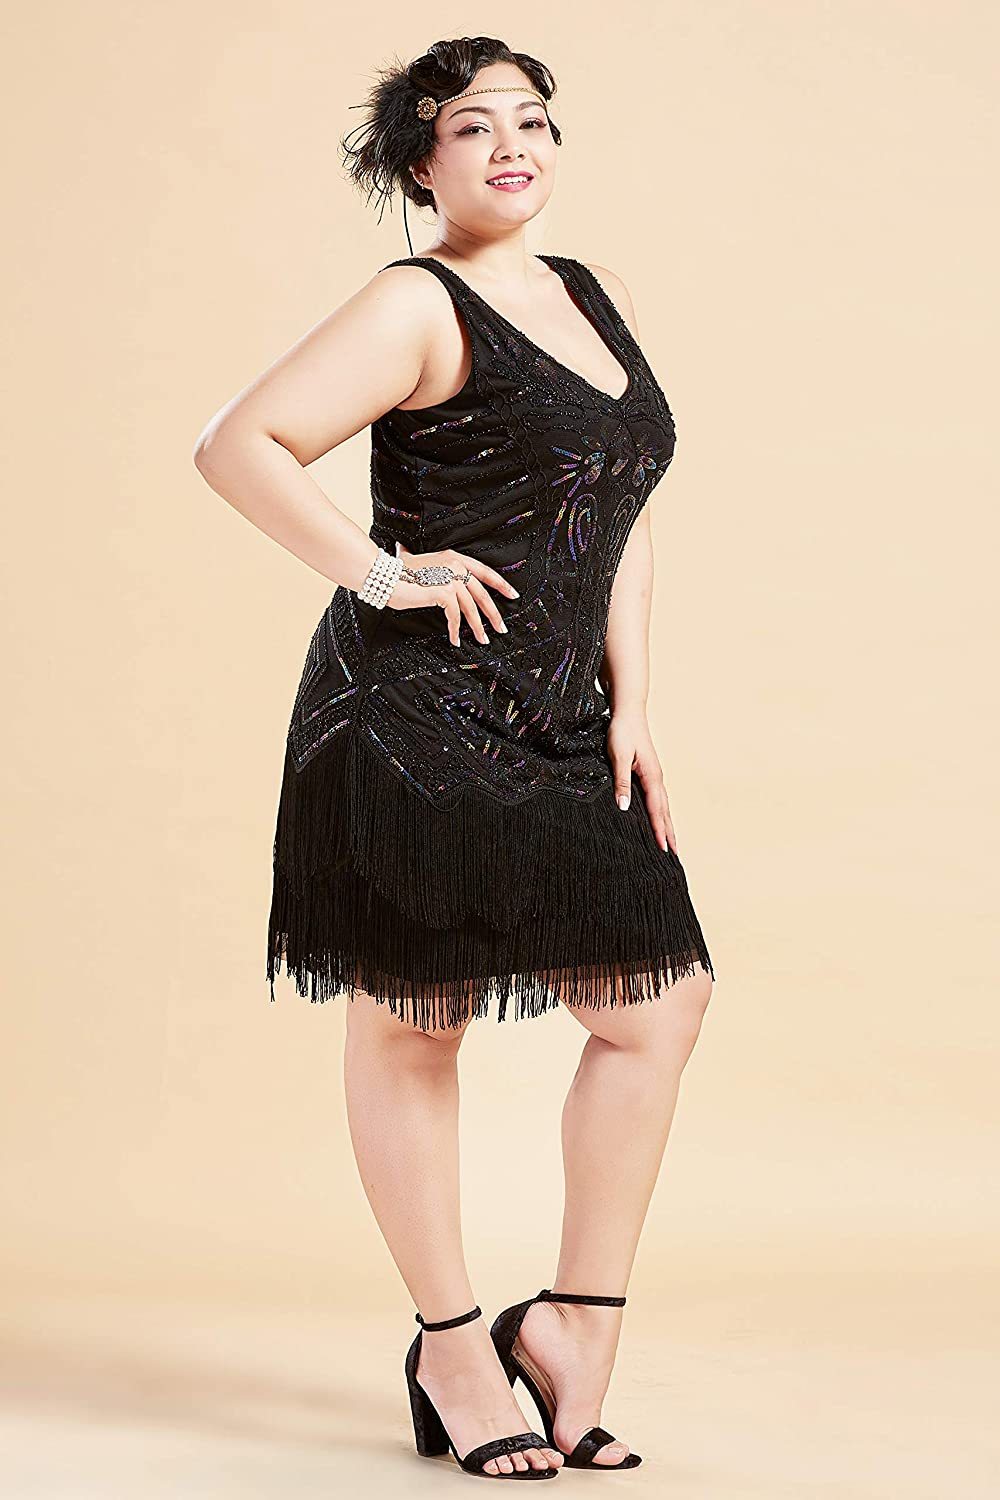 1920s Costumes: Flapper, Great Gatsby, Gangster Girl BABEYOND Womens Plus Size Flapper Dresses 1920s V Neck Beaded Fringed Great Gatsby Dress $40.99 AT vintagedancer.com